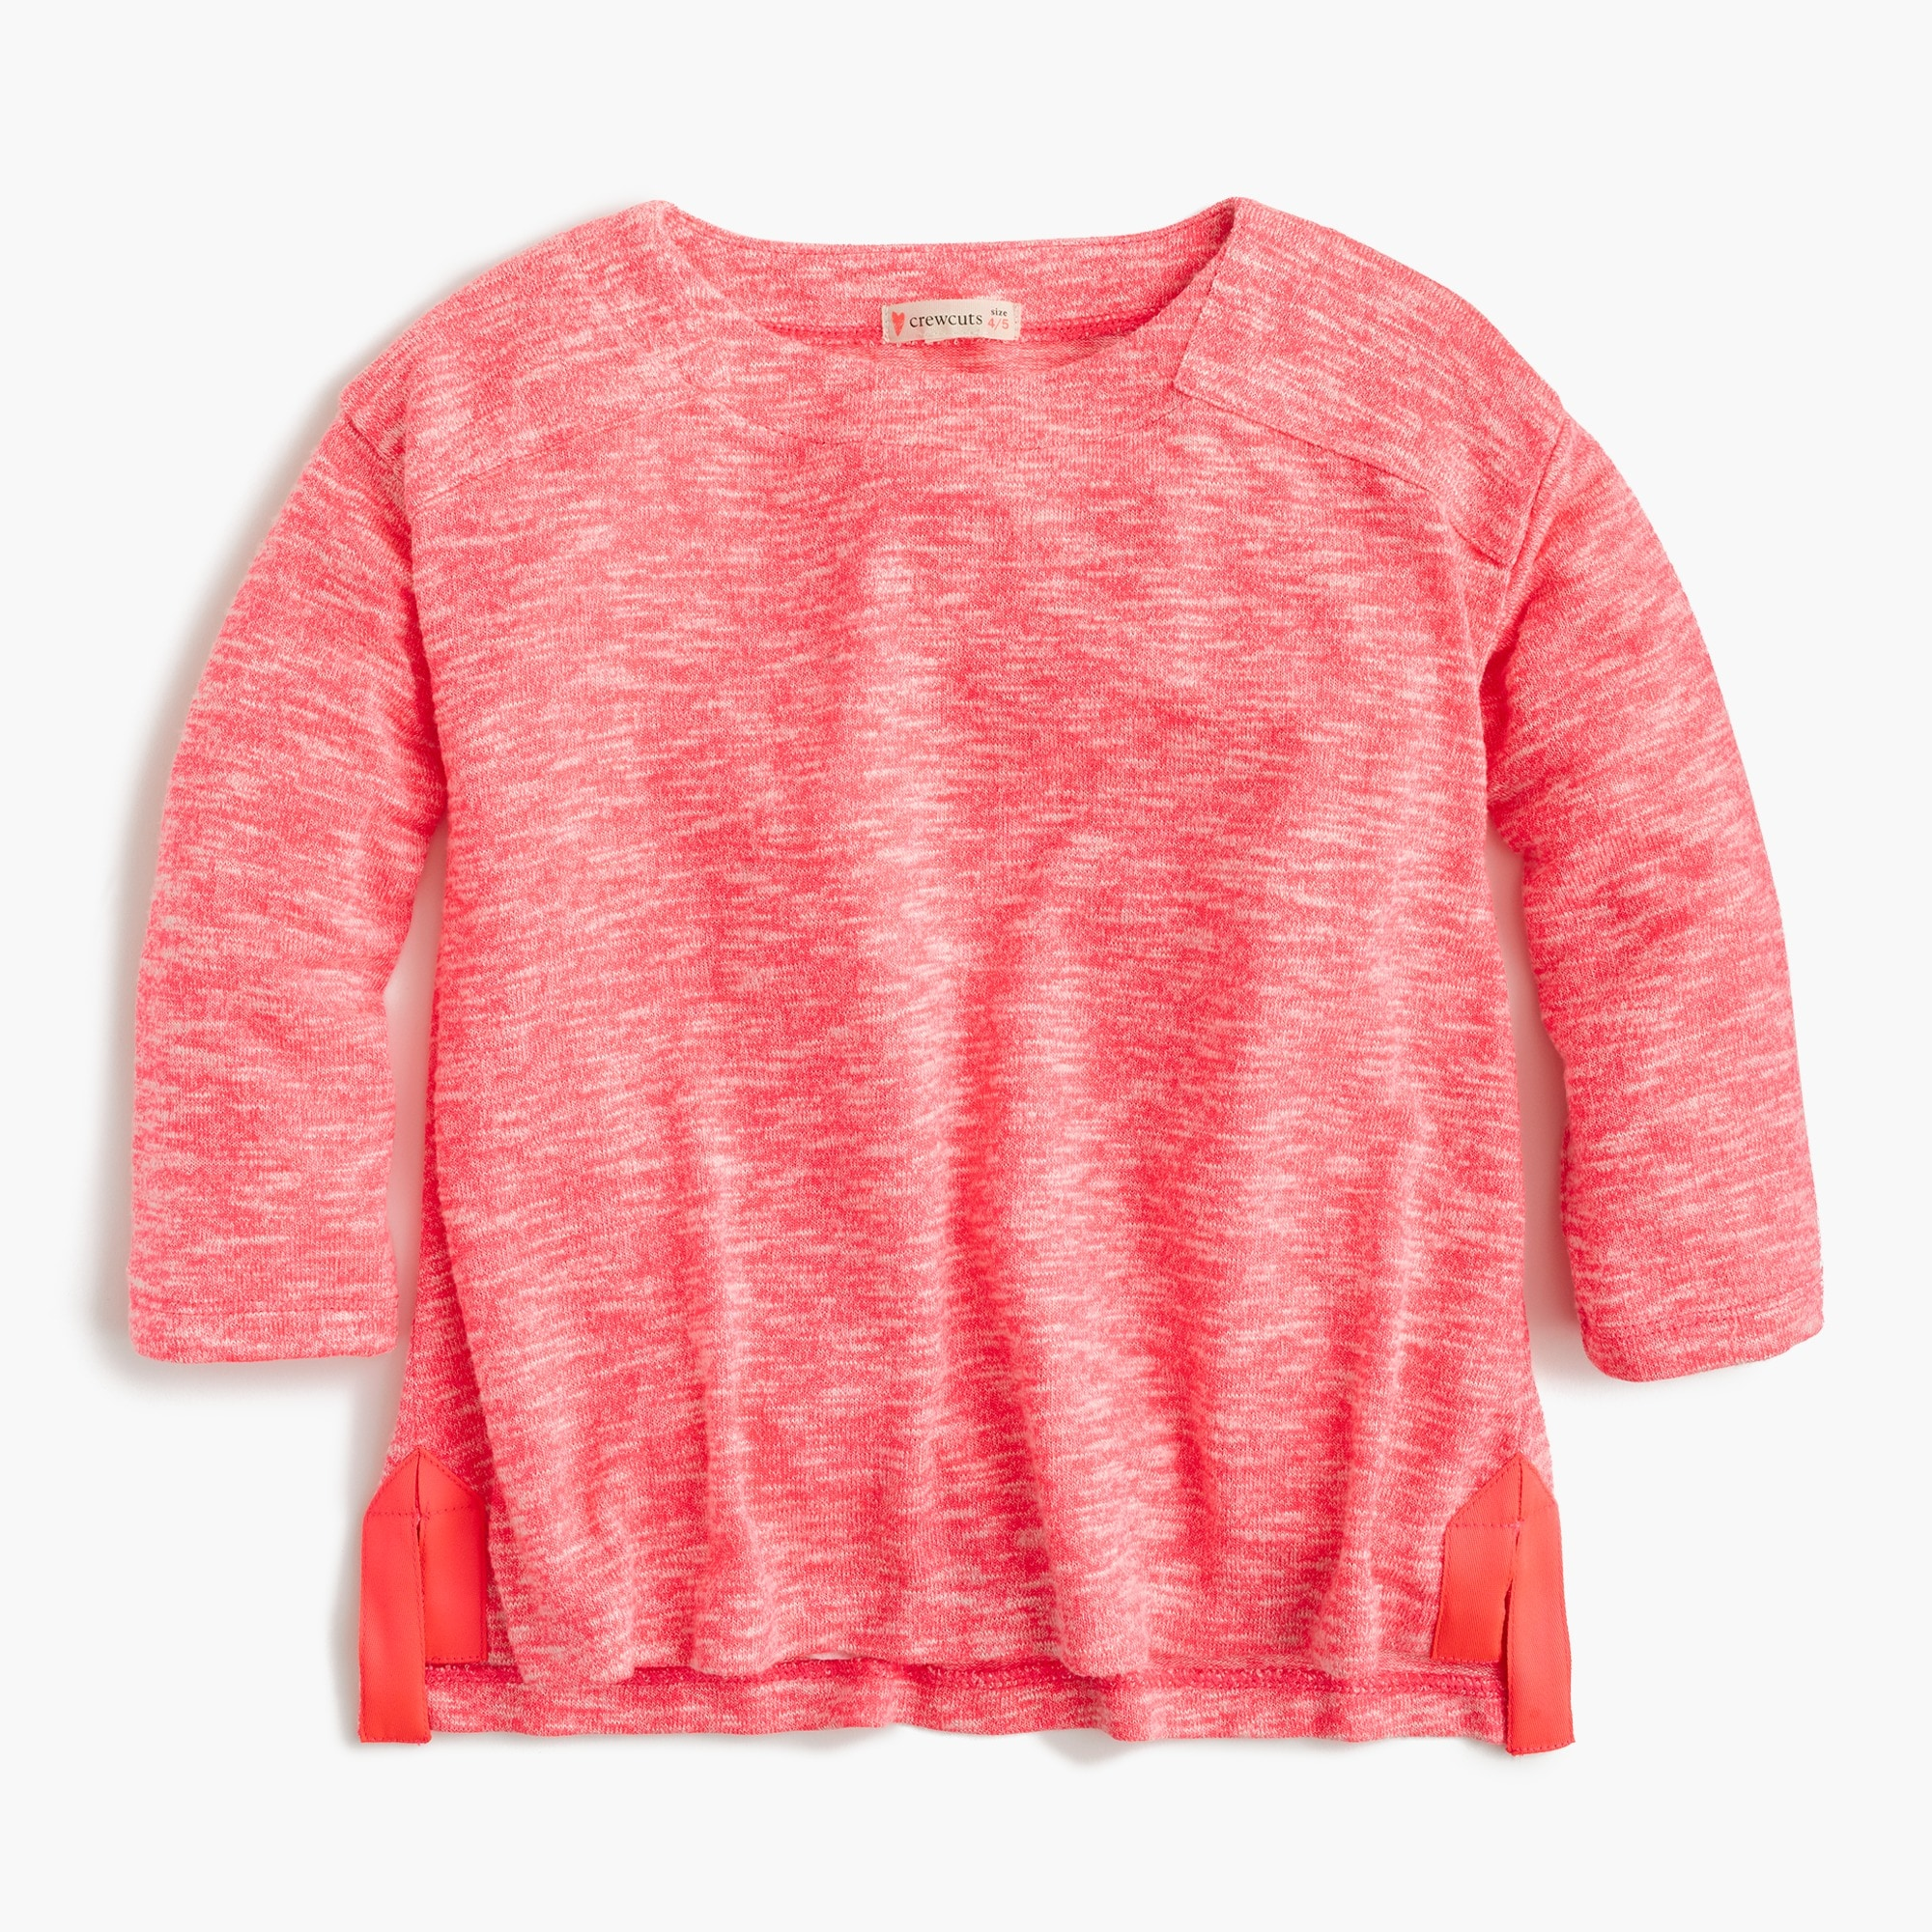 Girls' marled T-shirt